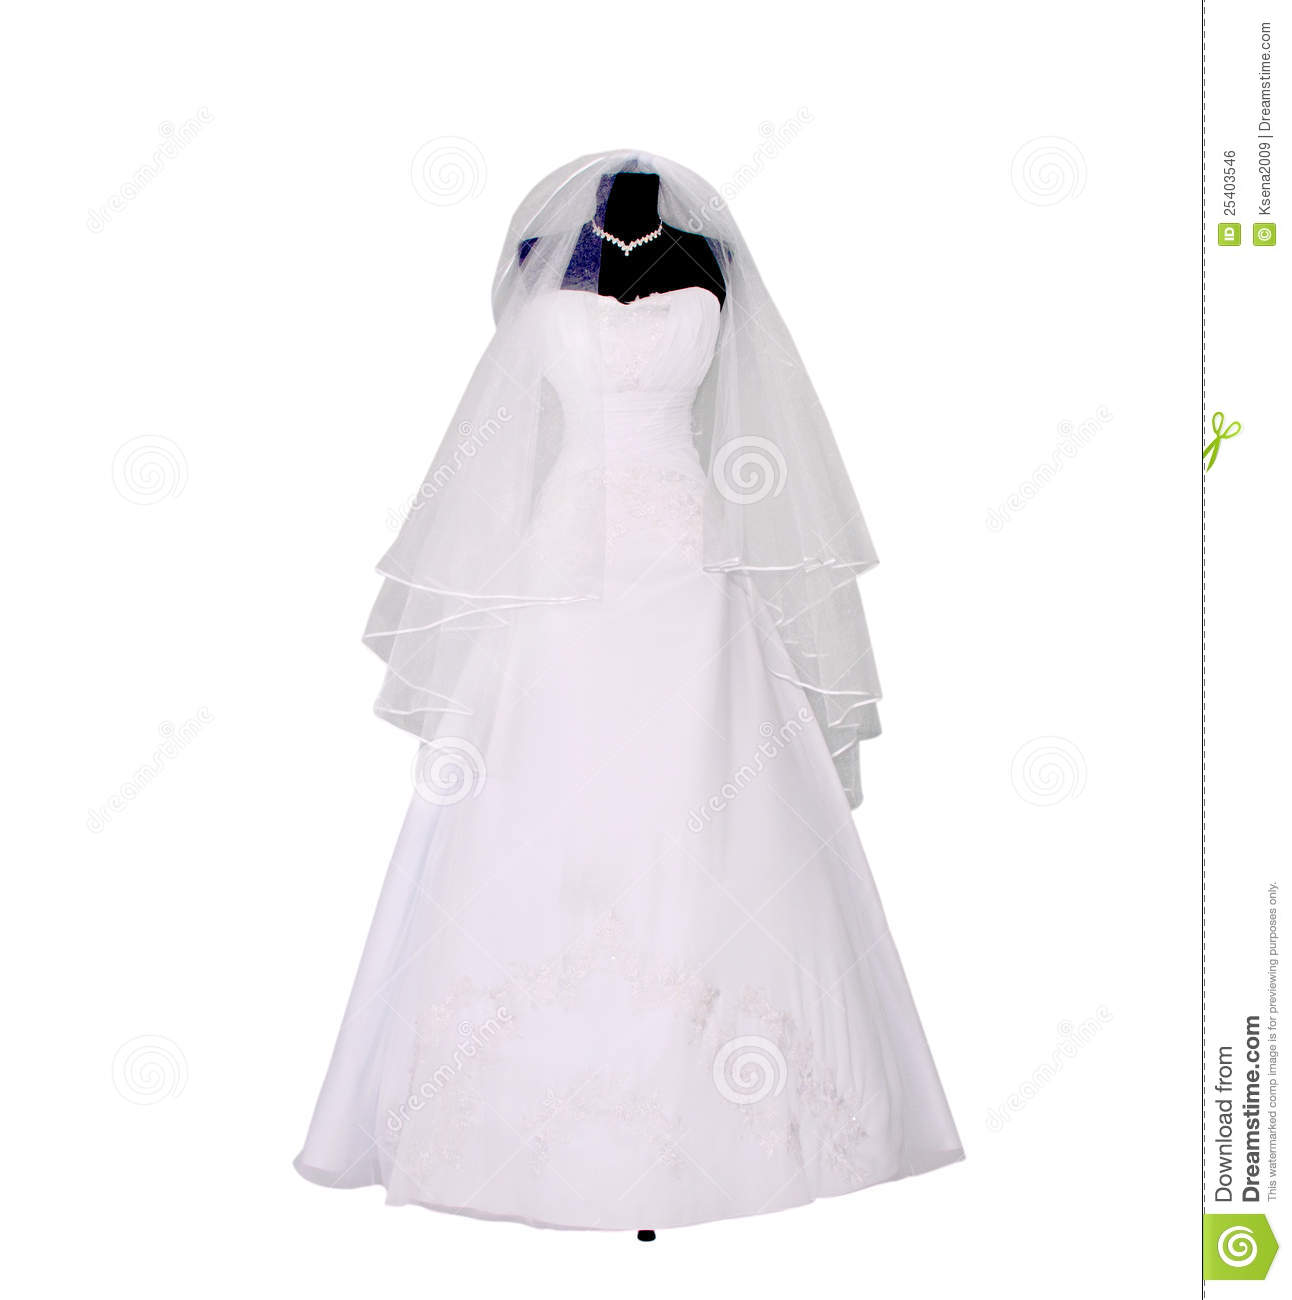 Wedding Dress On Mannequin Royalty Free Stock Image